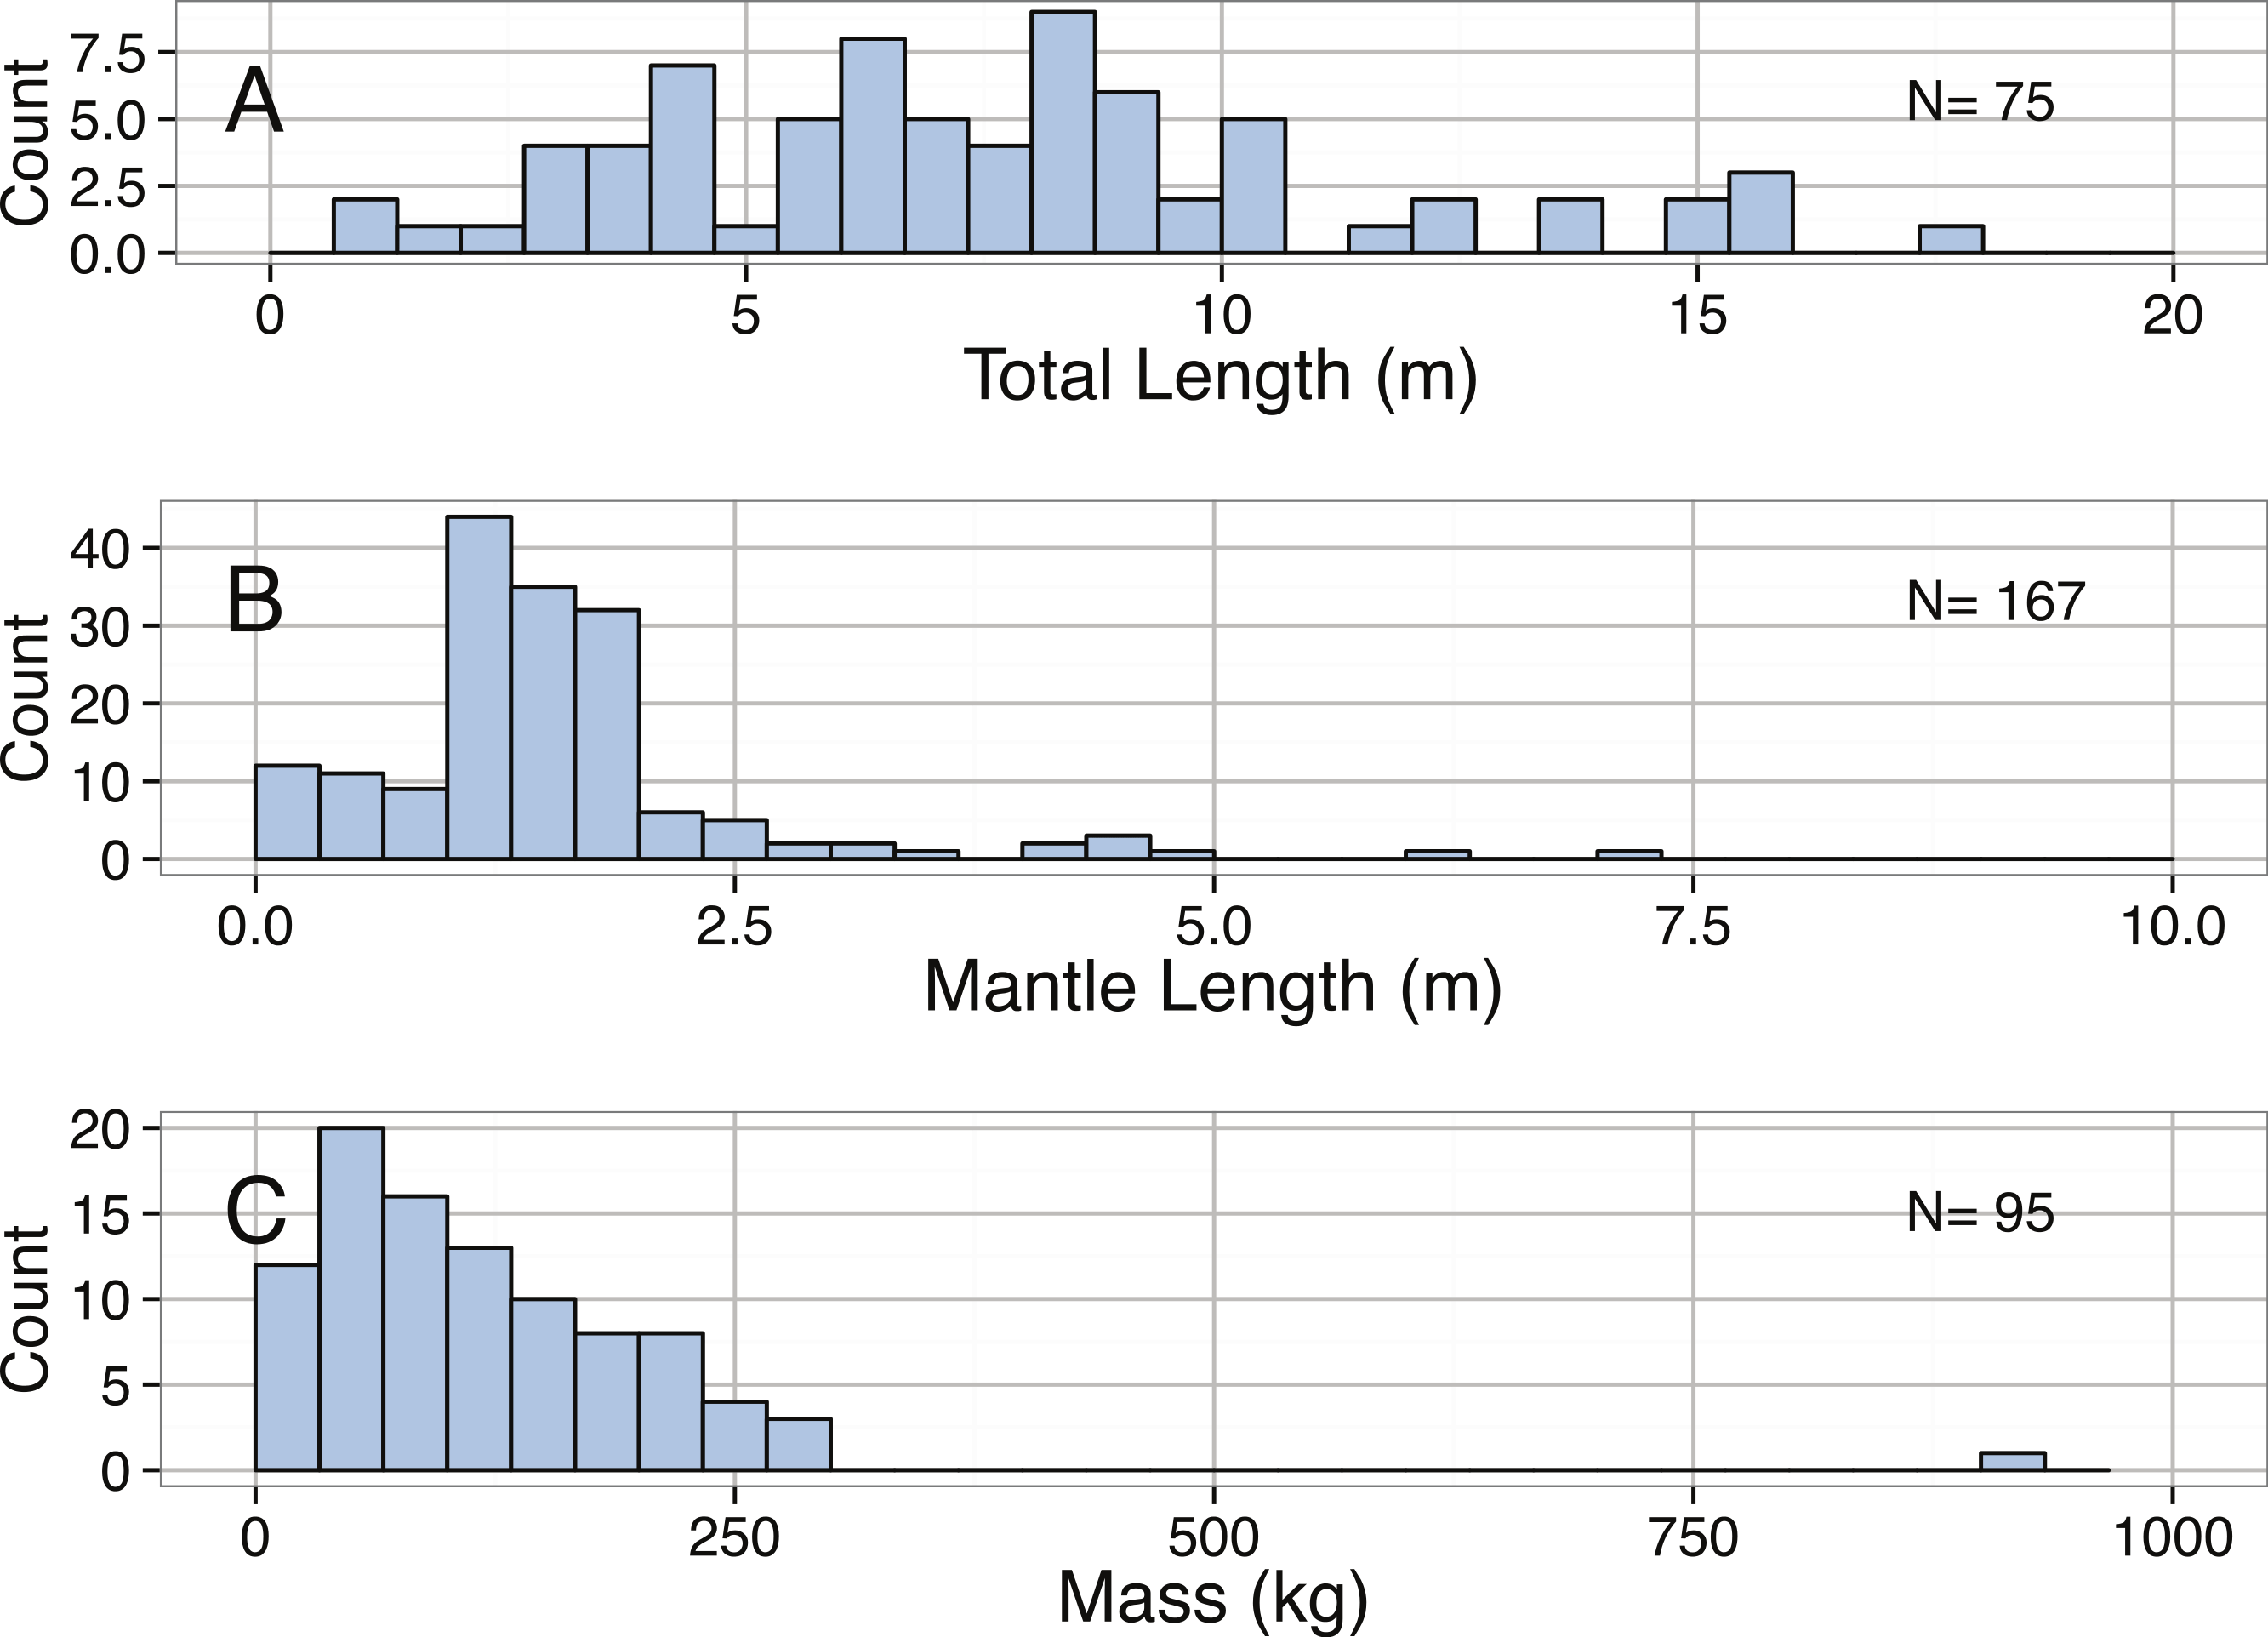 Size M Sizing Ocean Giants Patterns Of Intraspecific Size Variation In